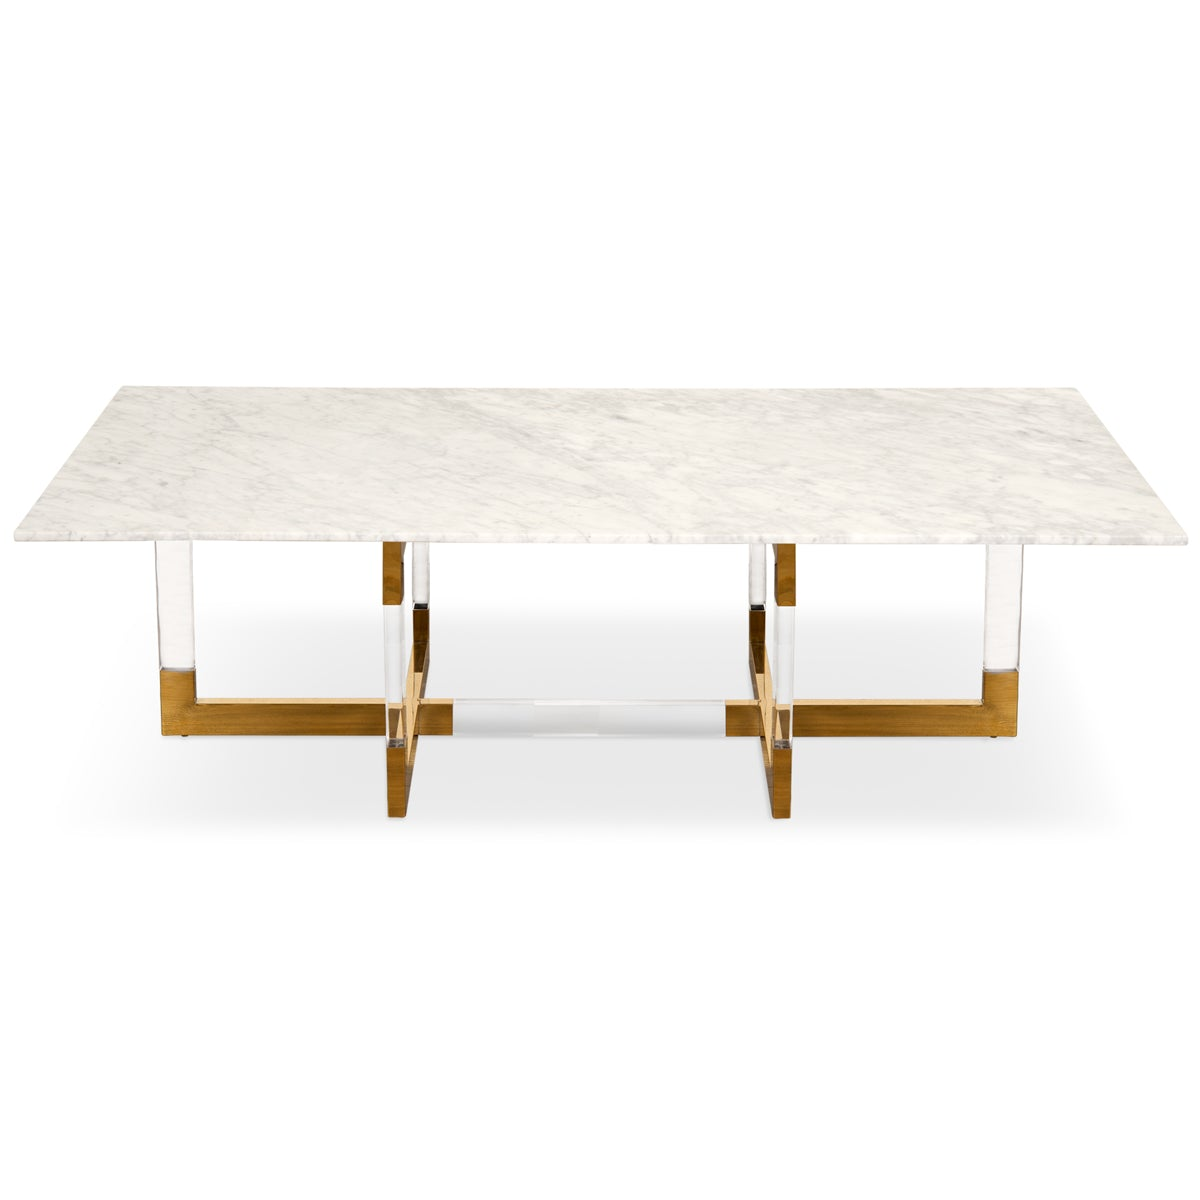 Trousdale 2 Coffee Table with Carrara Marble Top - ModShop1.com